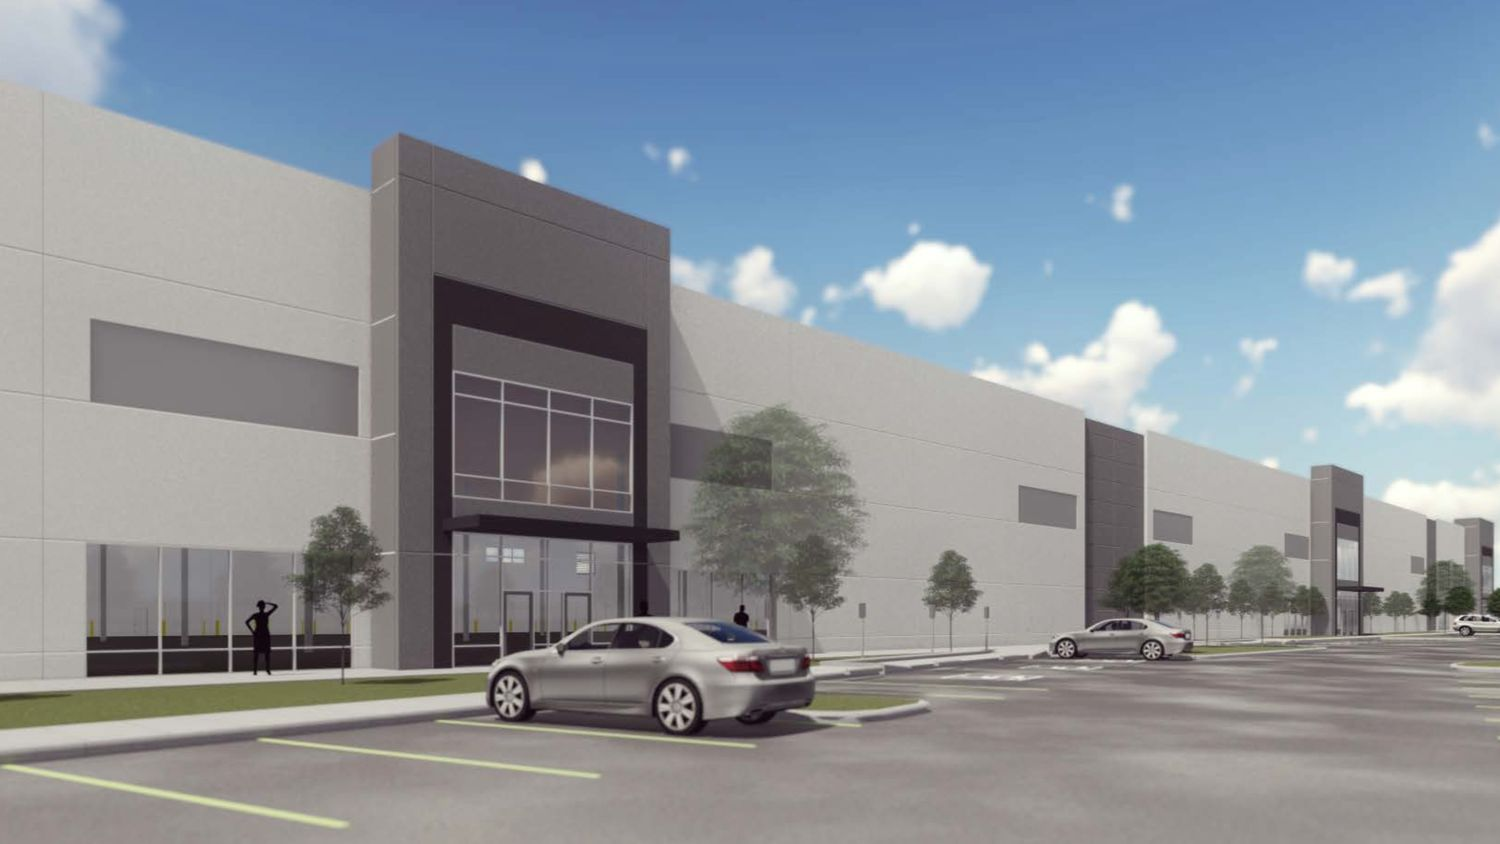 Amazon is taking a new building in the Star Business Park in Frisco.